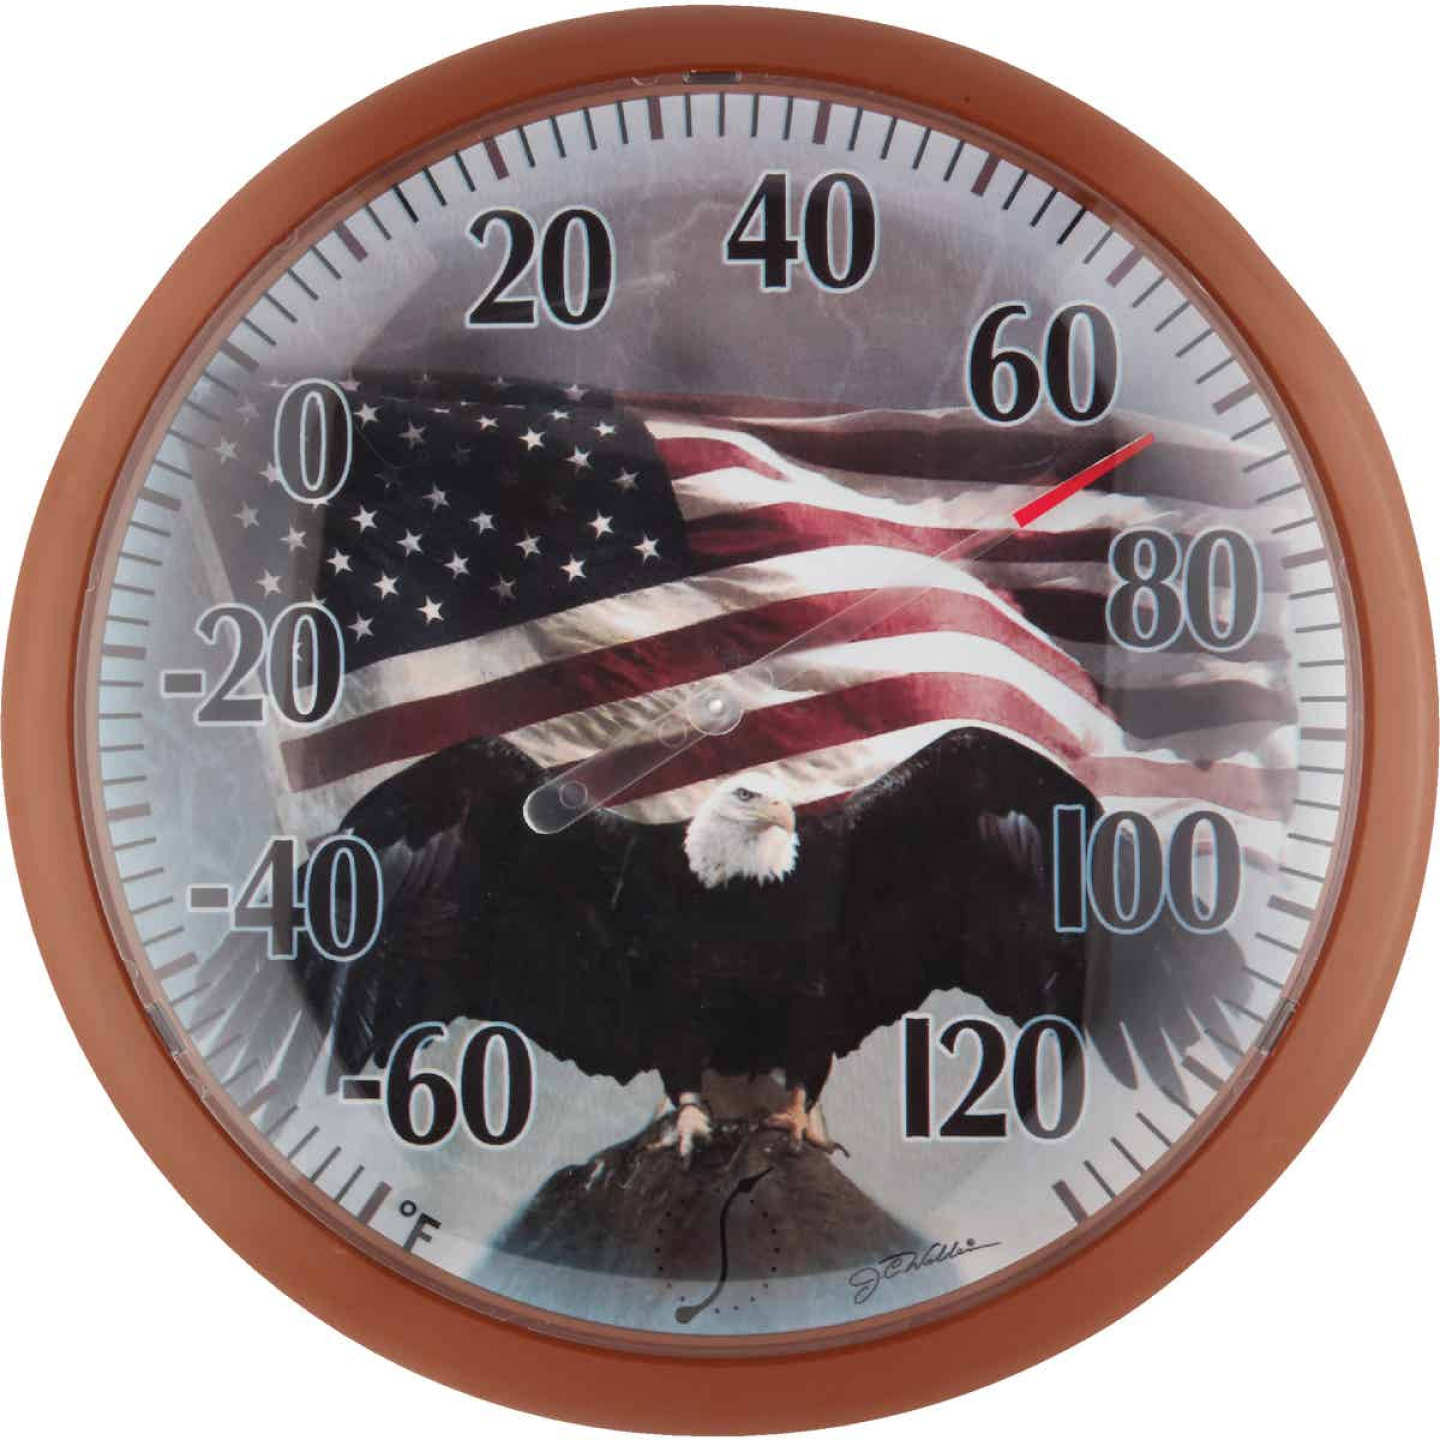 "Taylor SpringField 13-1/4"" Dia Plastic Dial Flag Indoor & Outdoor Thermometer Image 1"